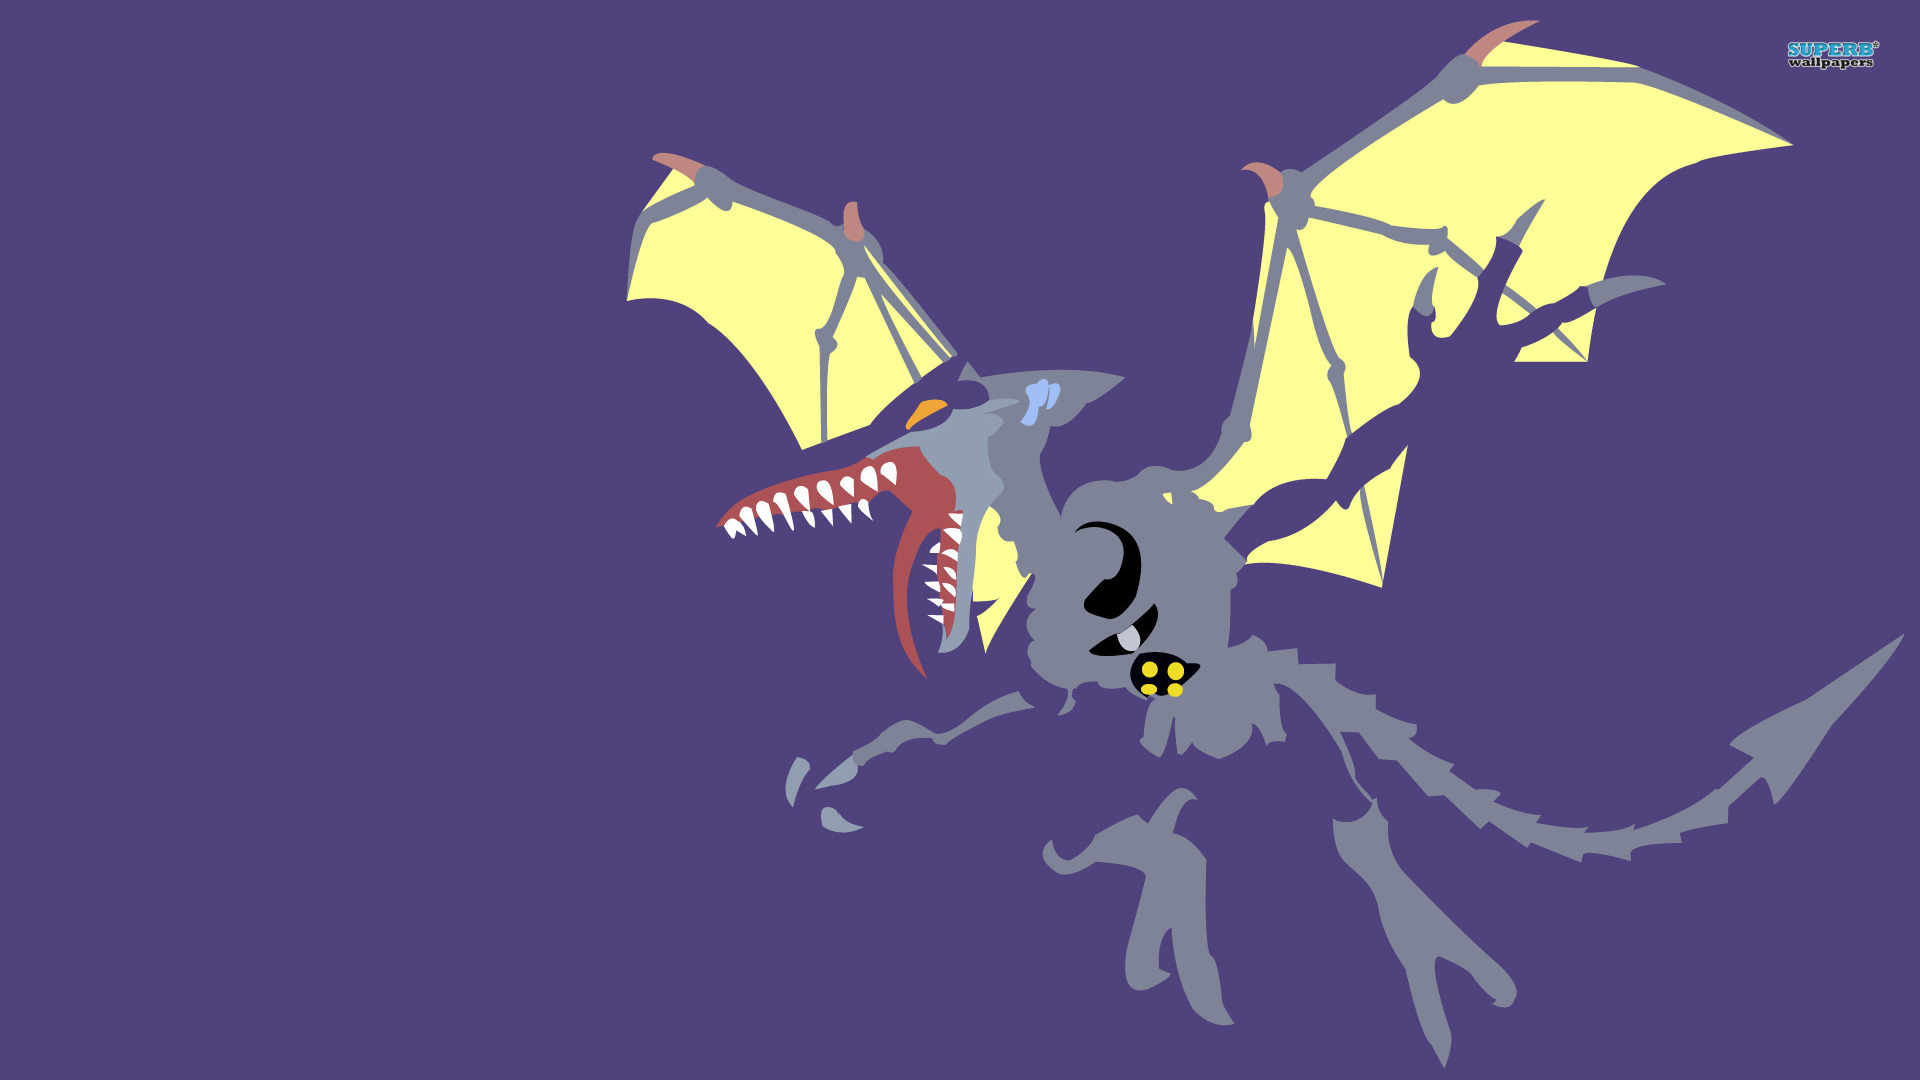 Ridley Images HD Wallpaper And Background Photos